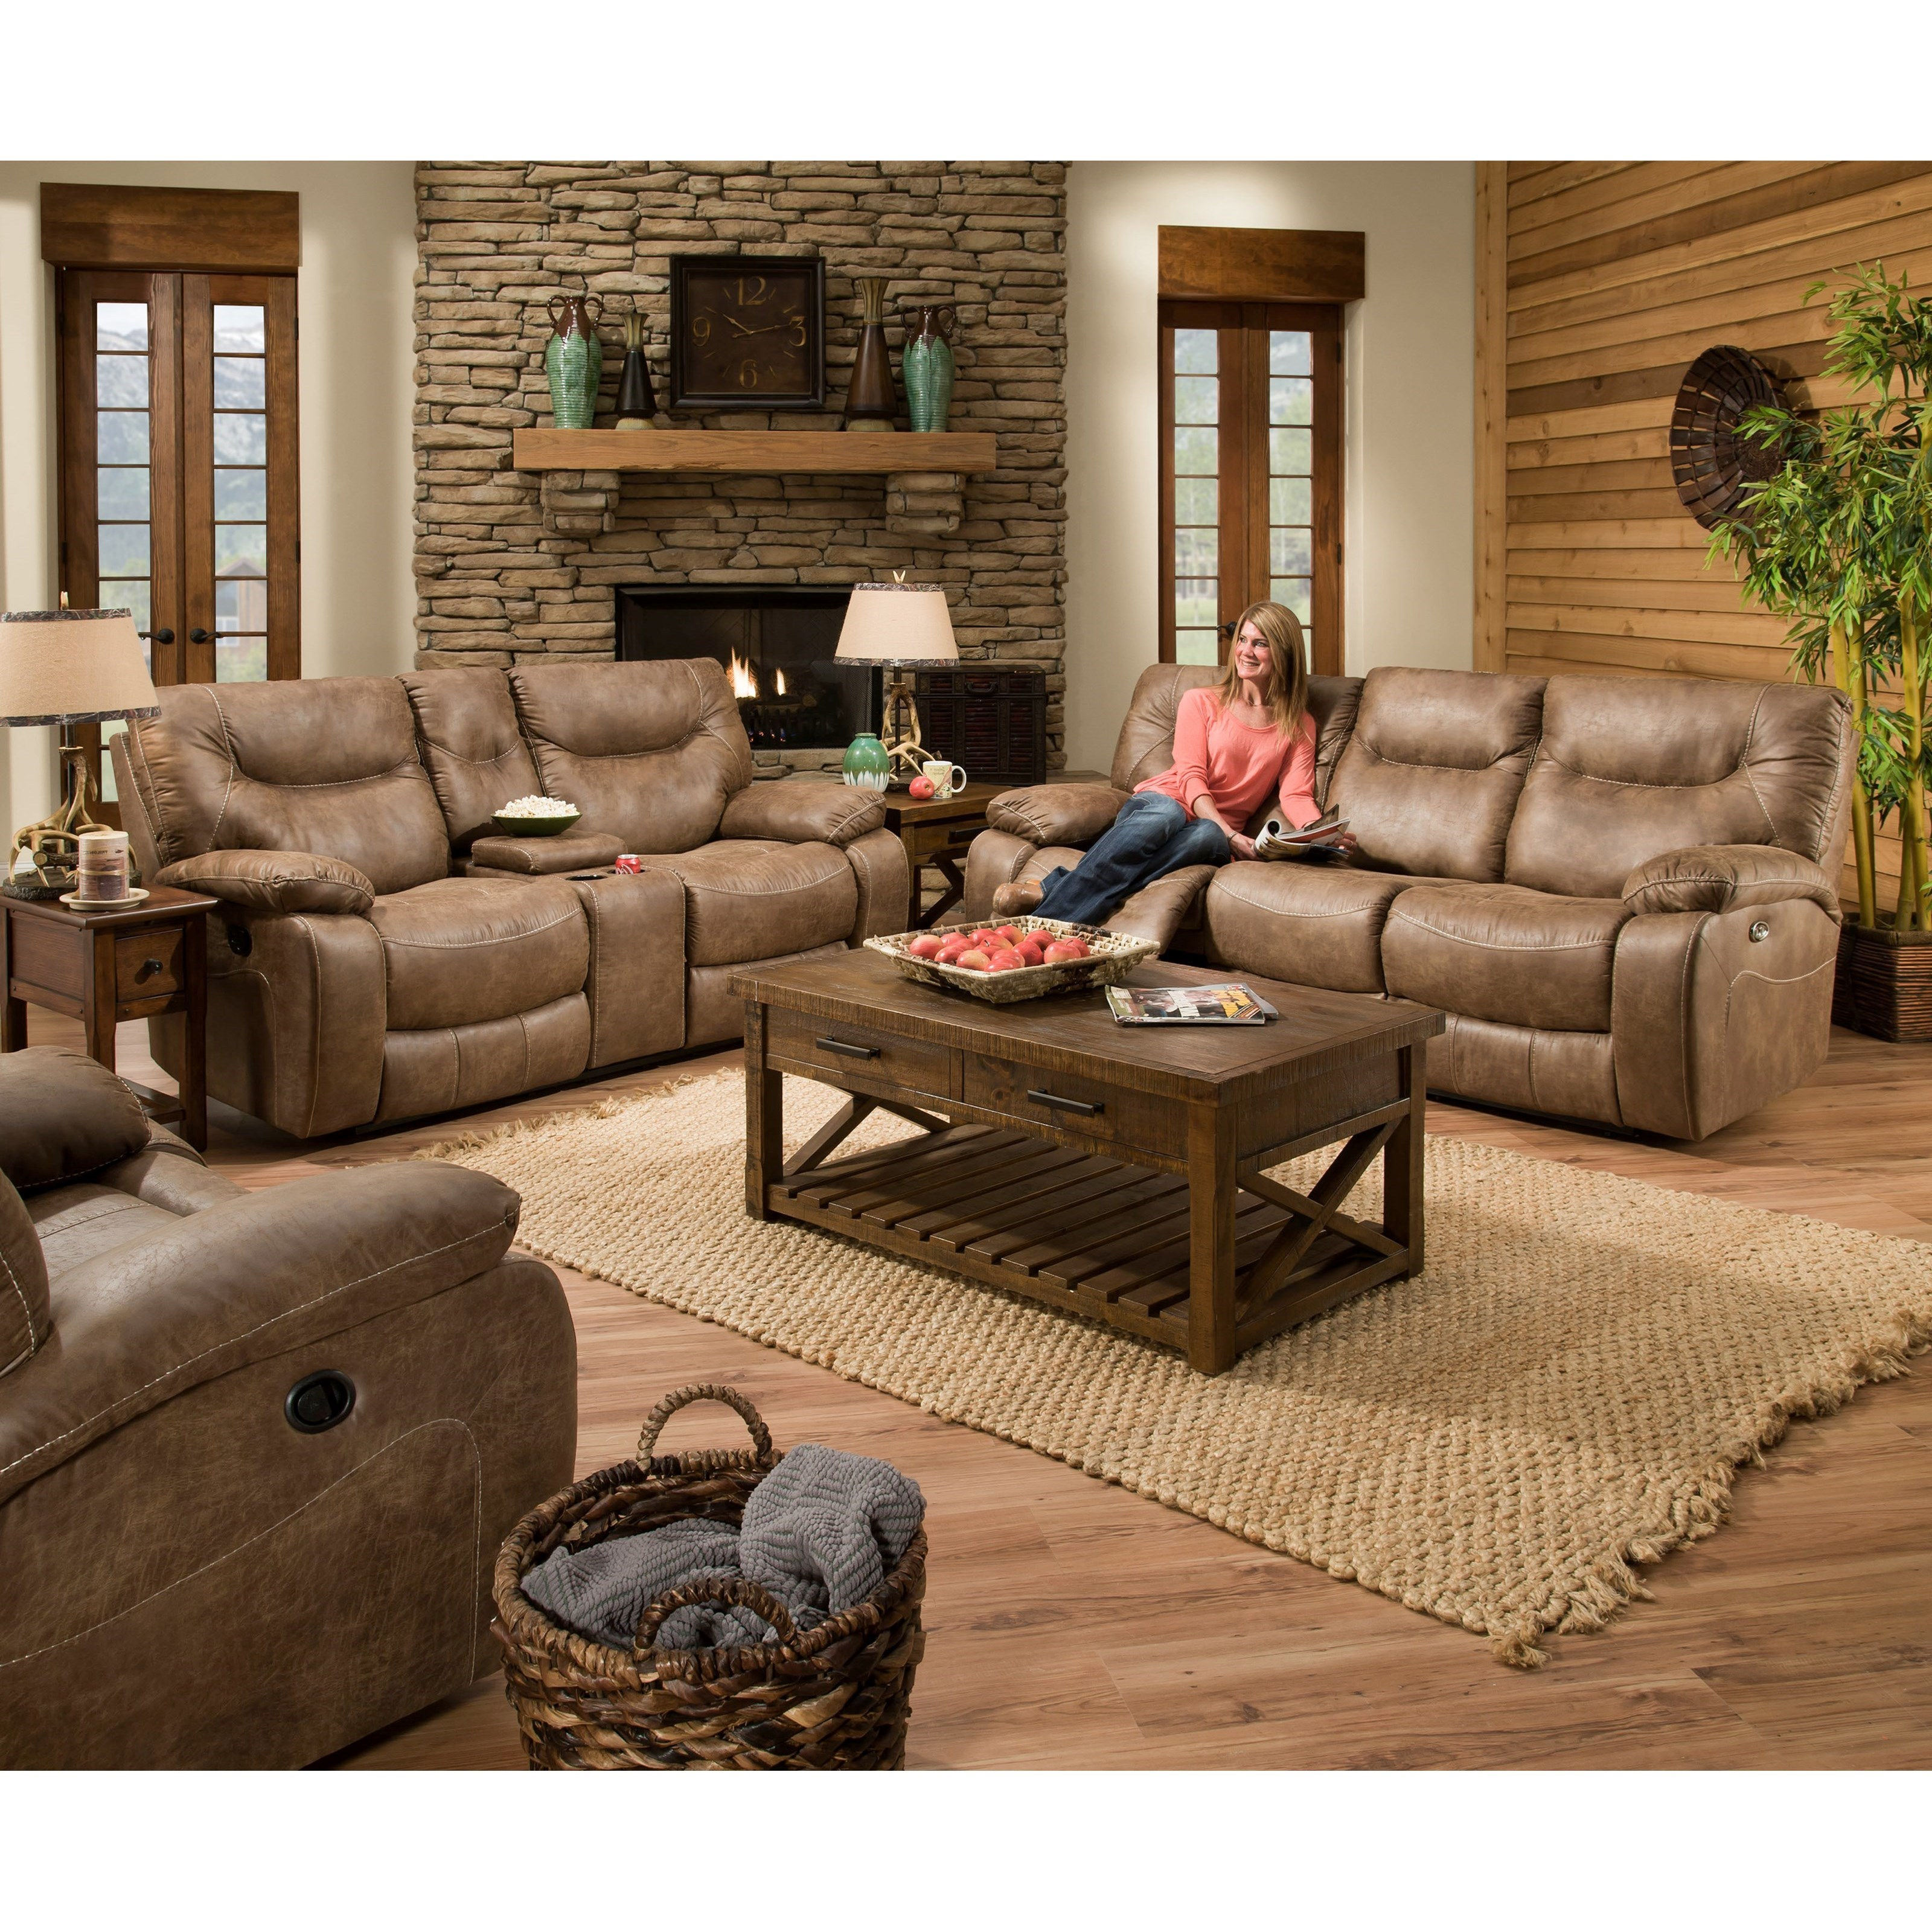 50250 BR Casual Living Room Group by United Furniture Industries at Bullard Furniture